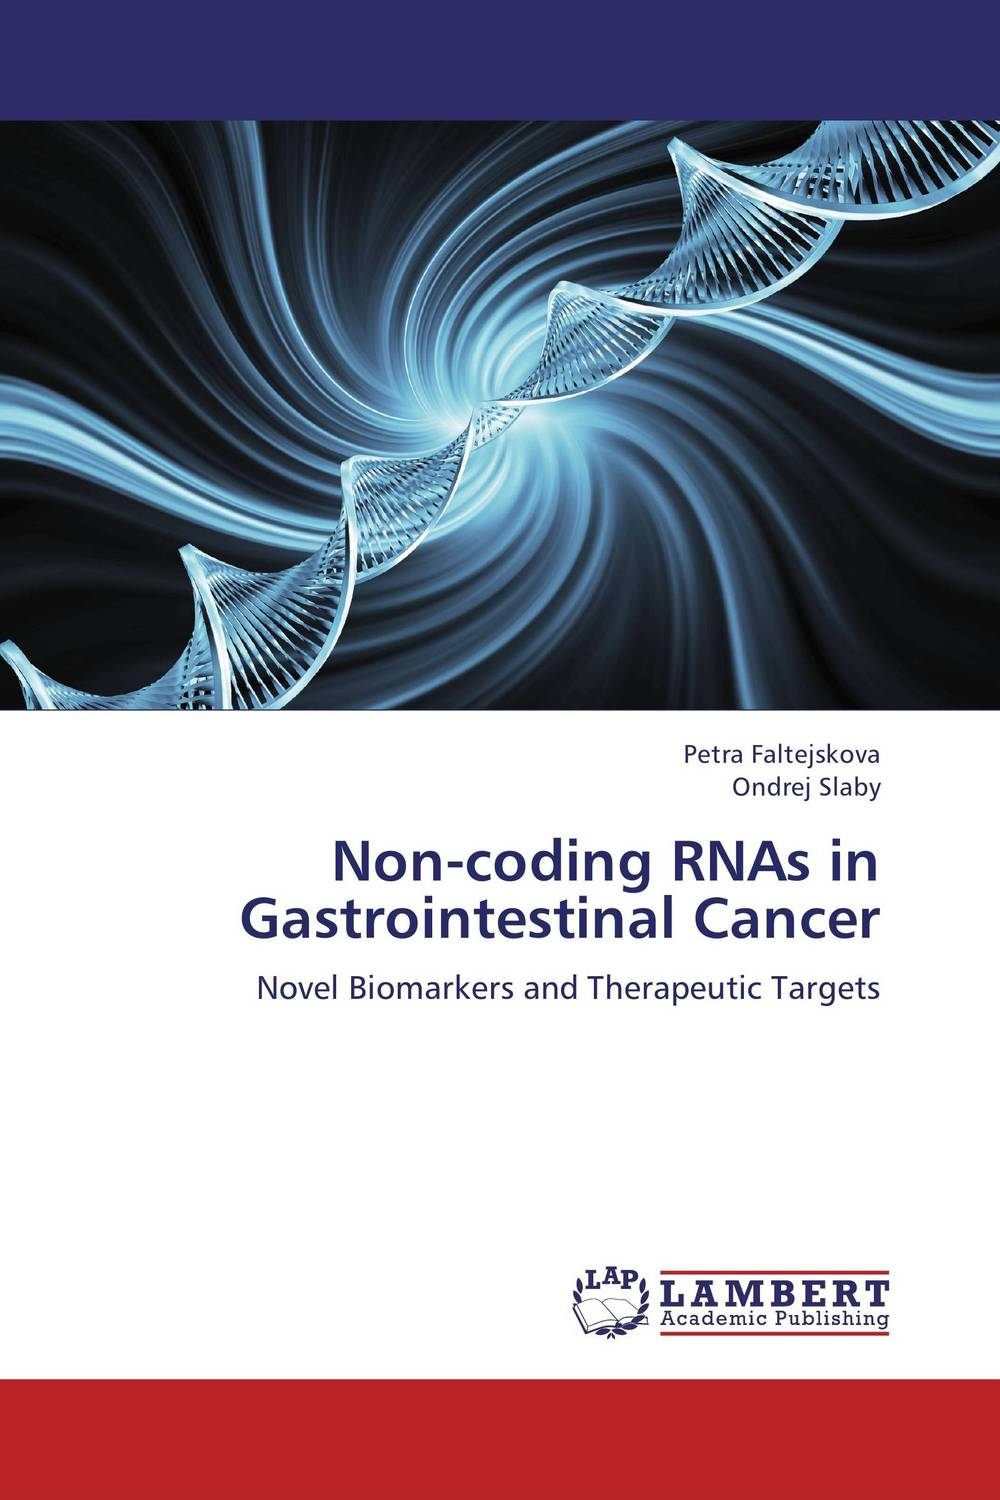 Non-coding RNAs in Gastrointestinal Cancer prognostic markers and cancer